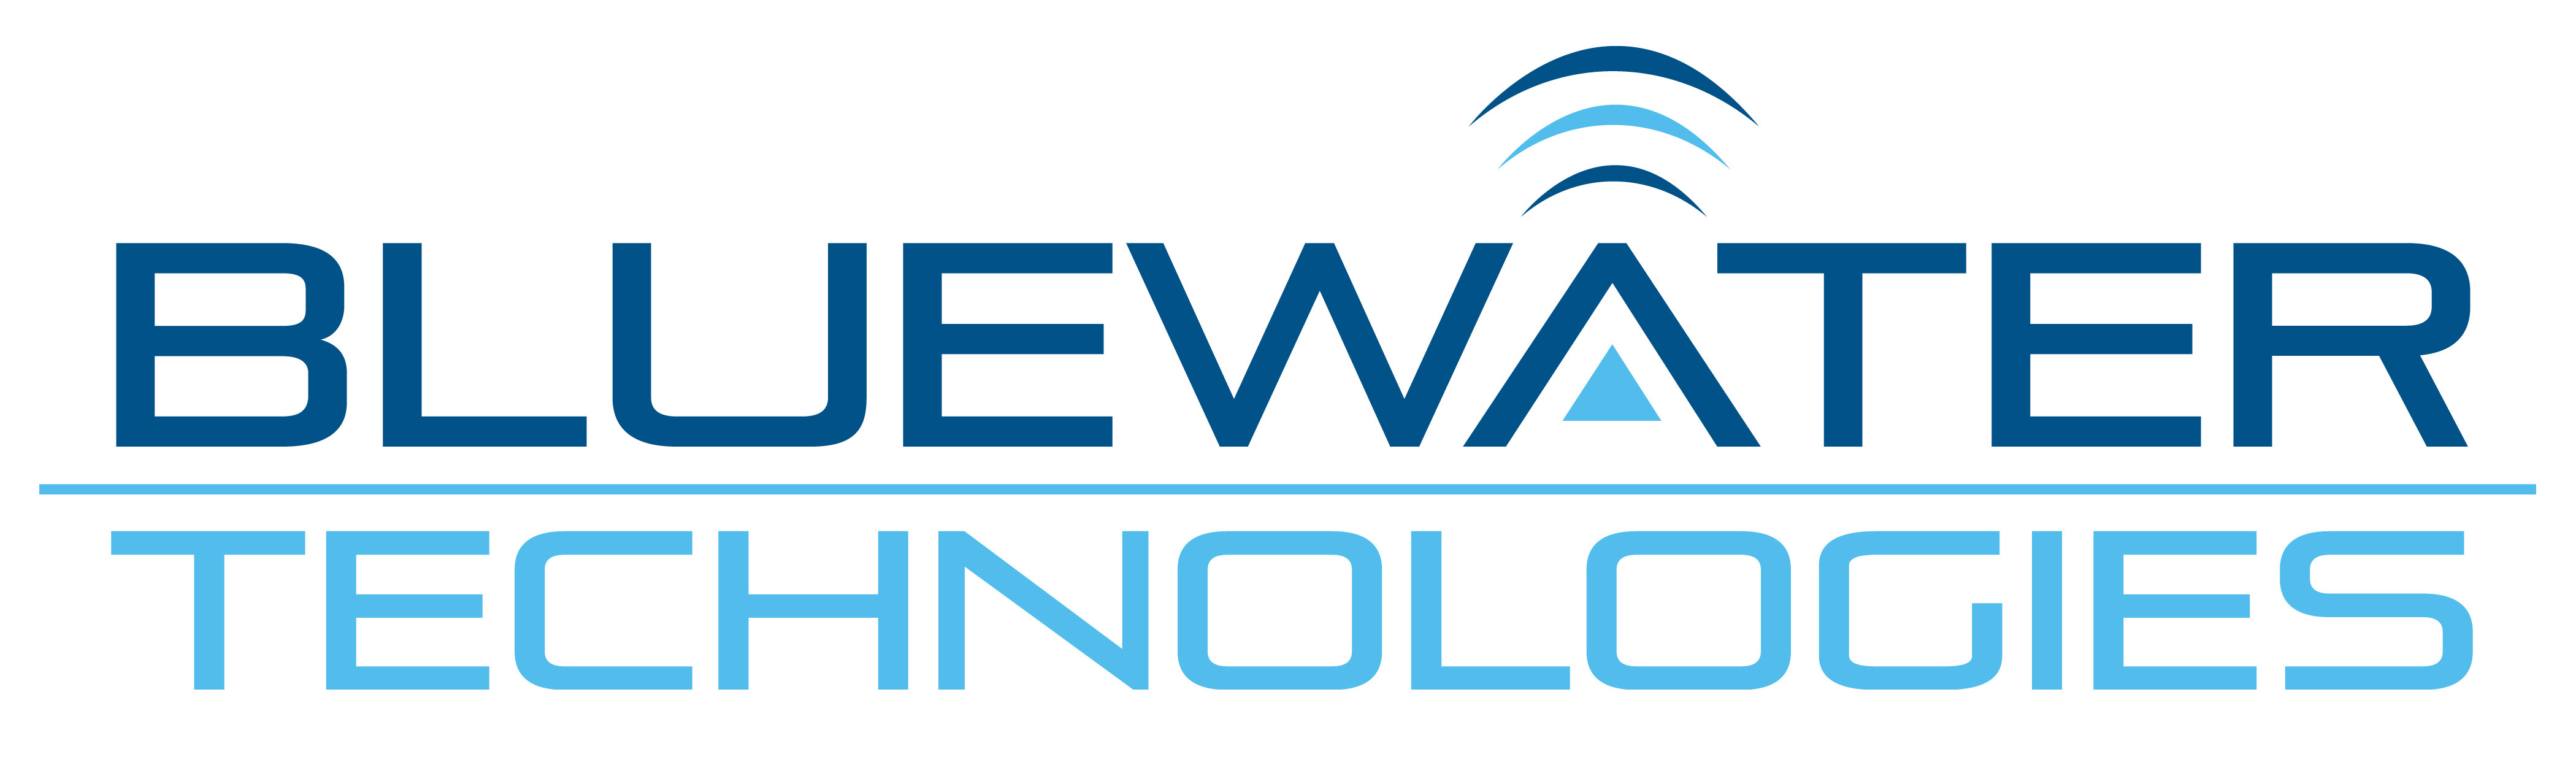 Bluewater Technologies